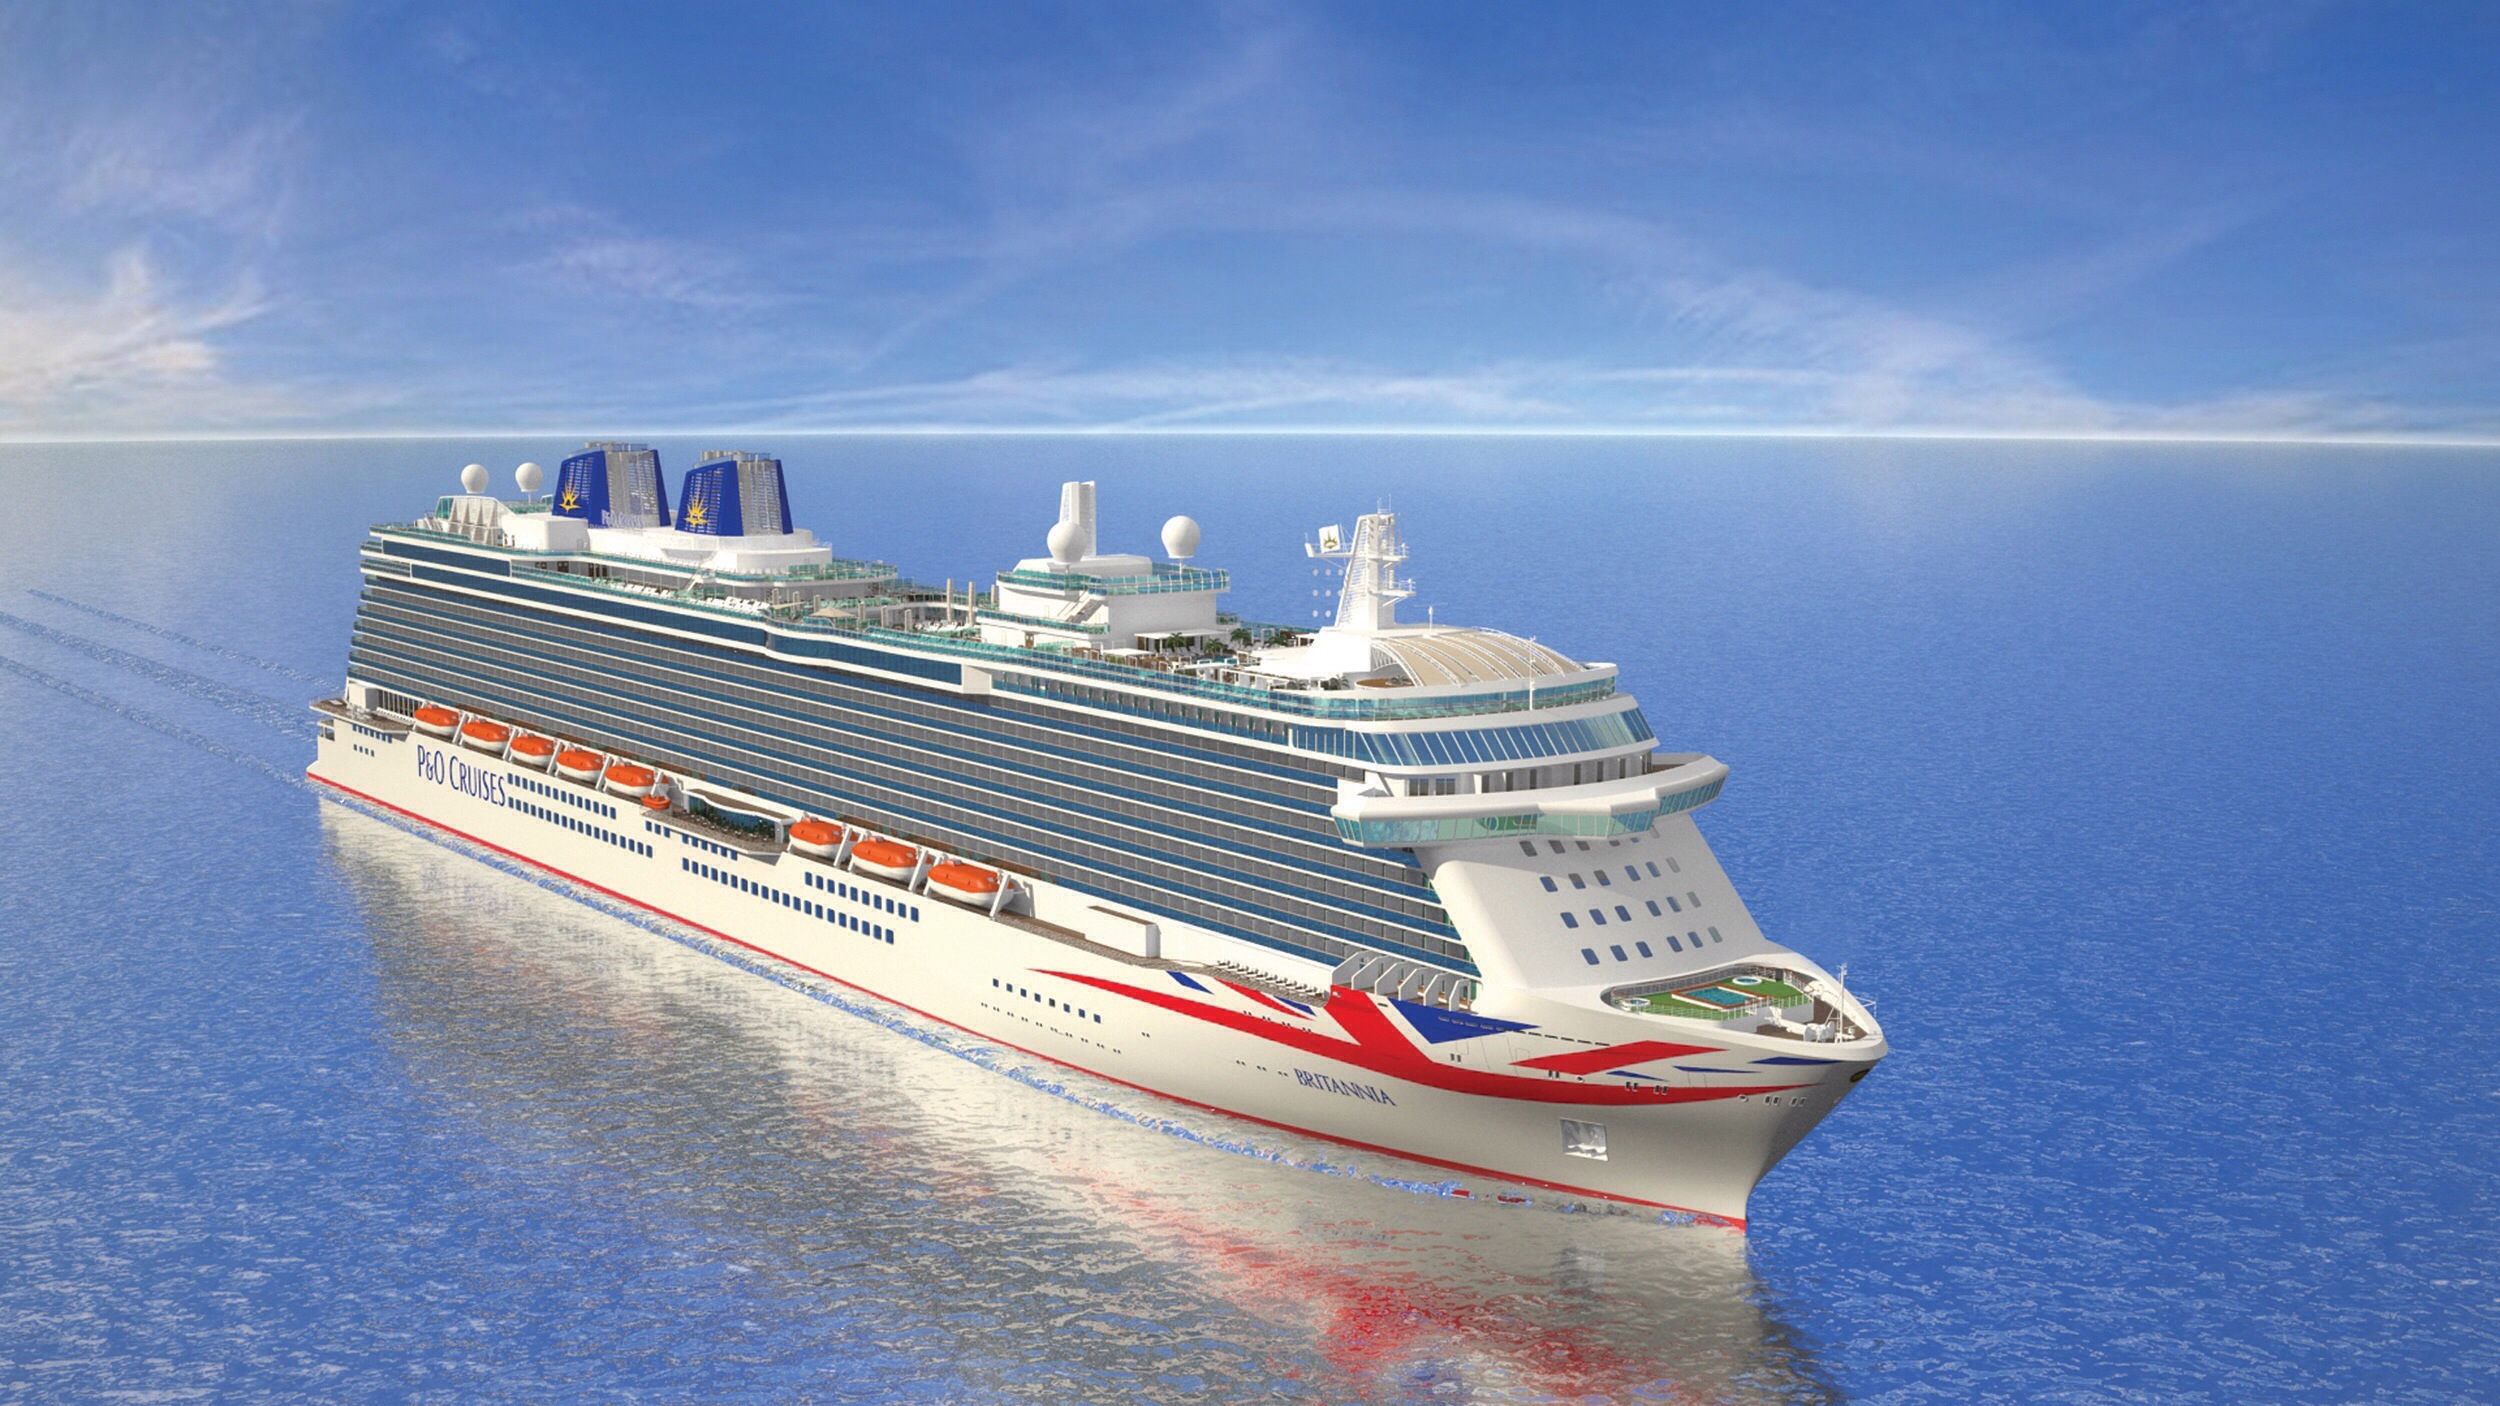 Britannia From Dedicated Wedding Venue To No Weddings At All - Cruise ships uk